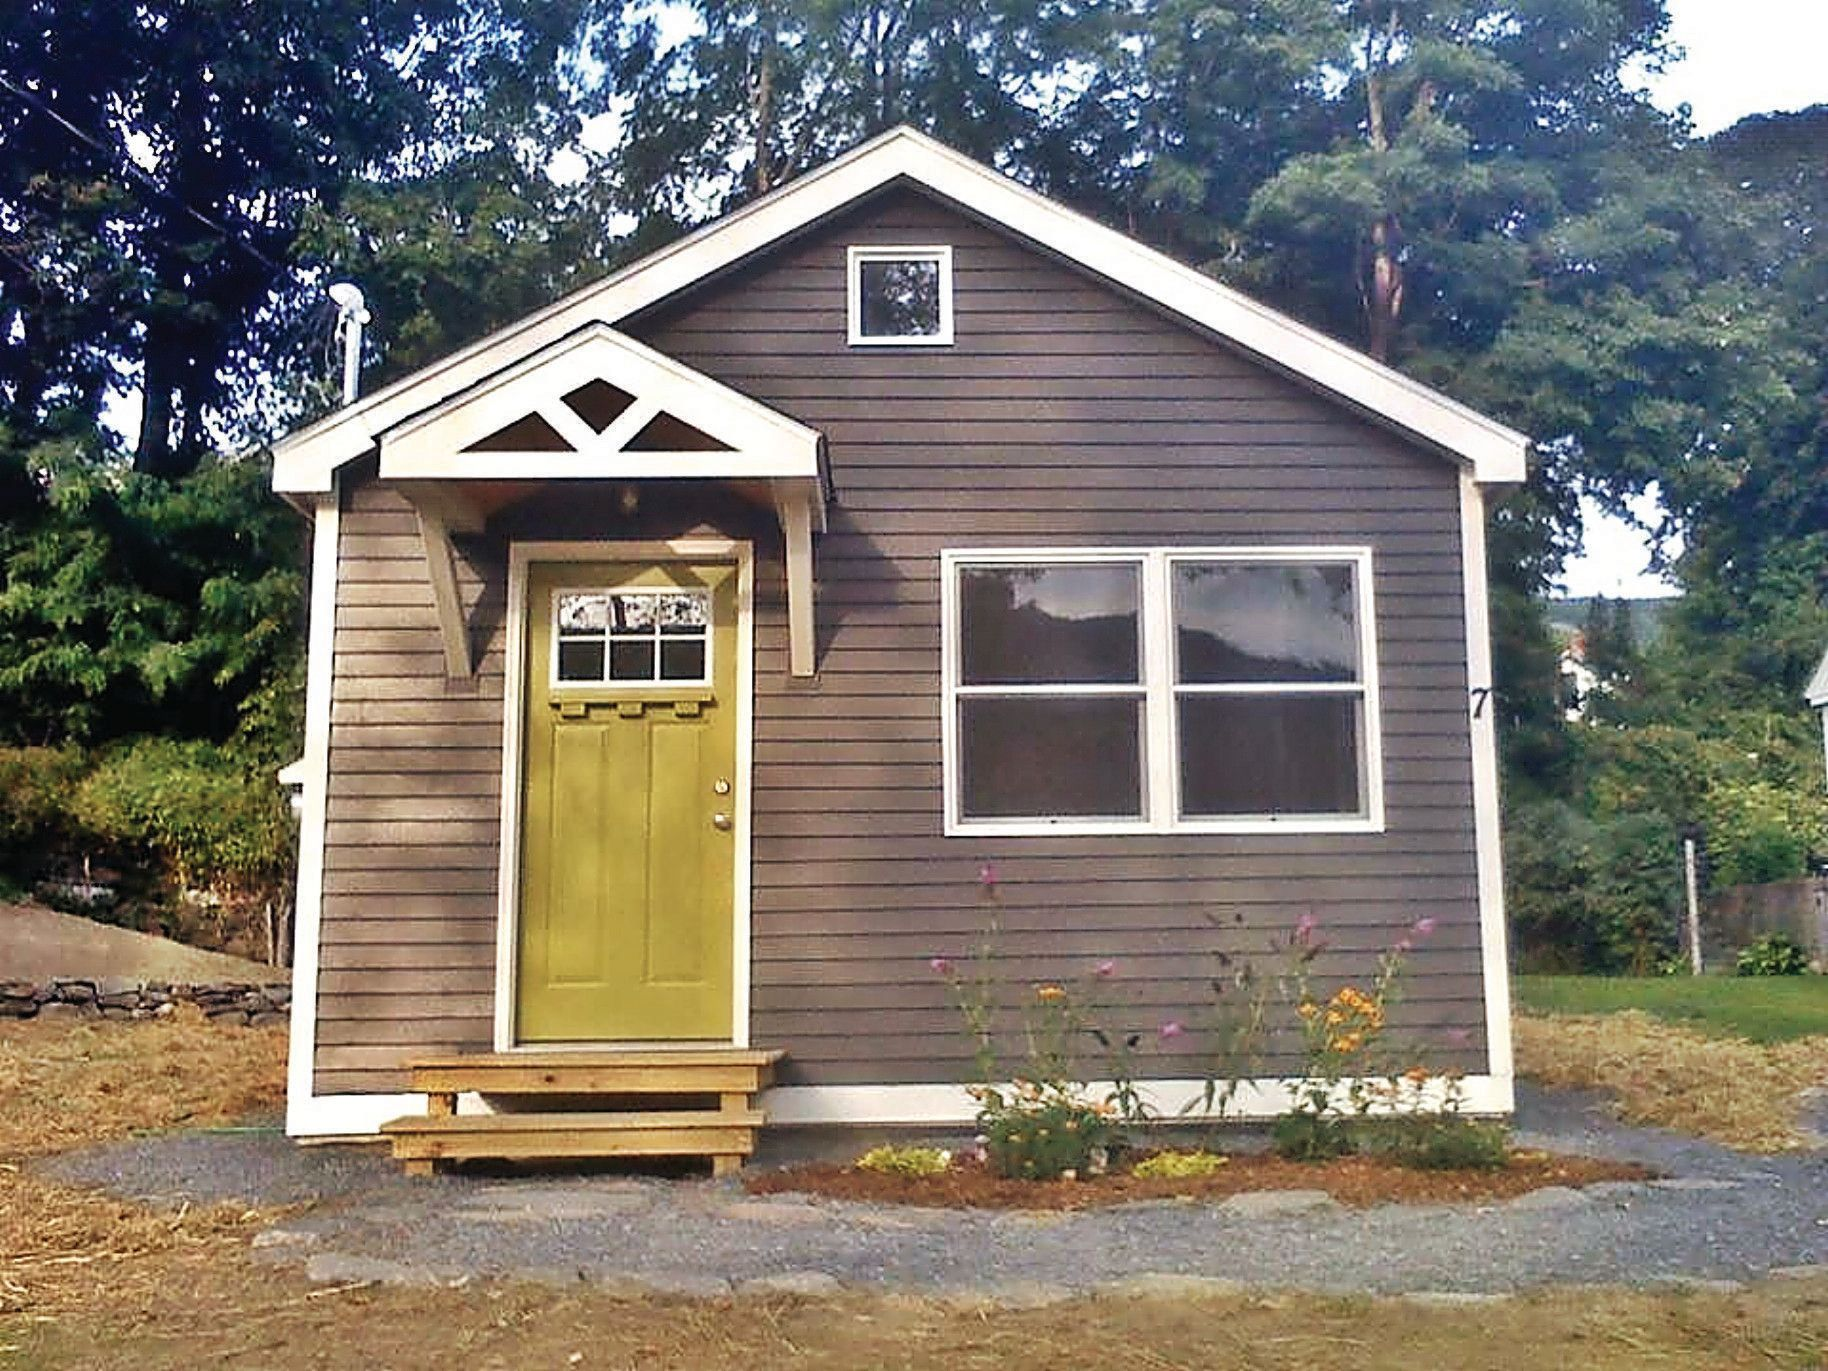 The Little Sprout Tiny Open House Set For Sept 4